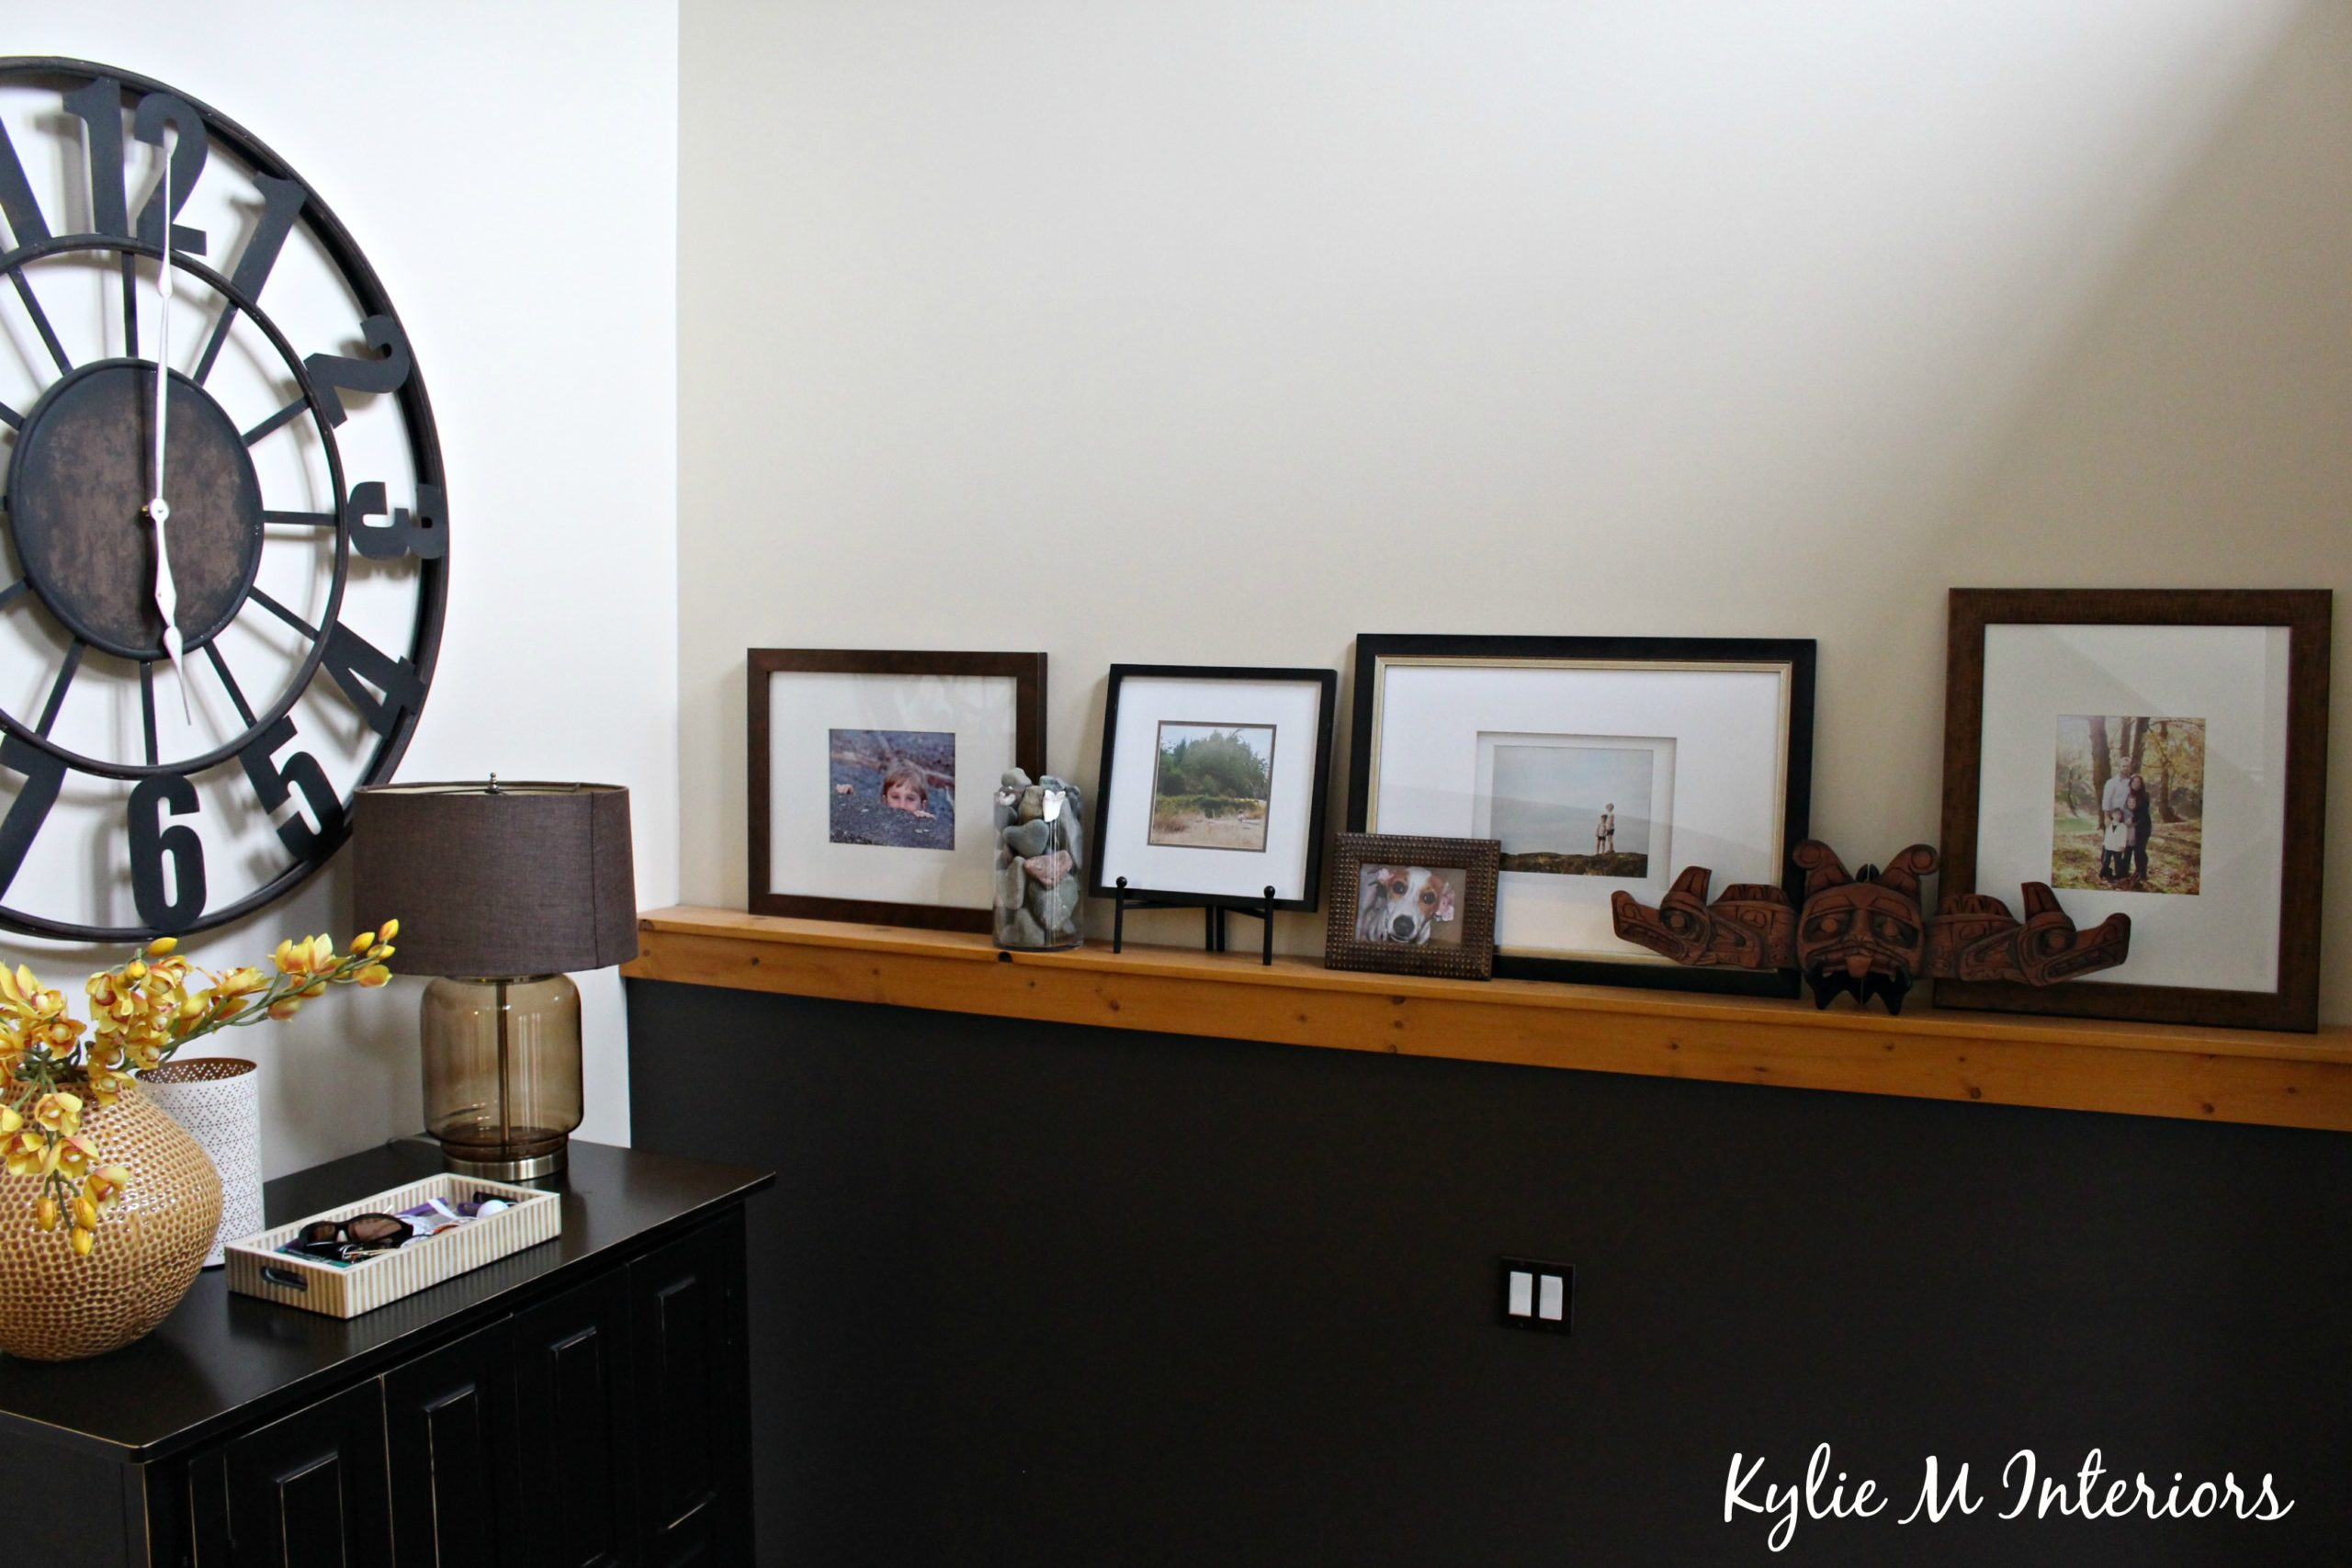 Large Clock In Foyer : Decor ideas for a foundation wall with artwork in an